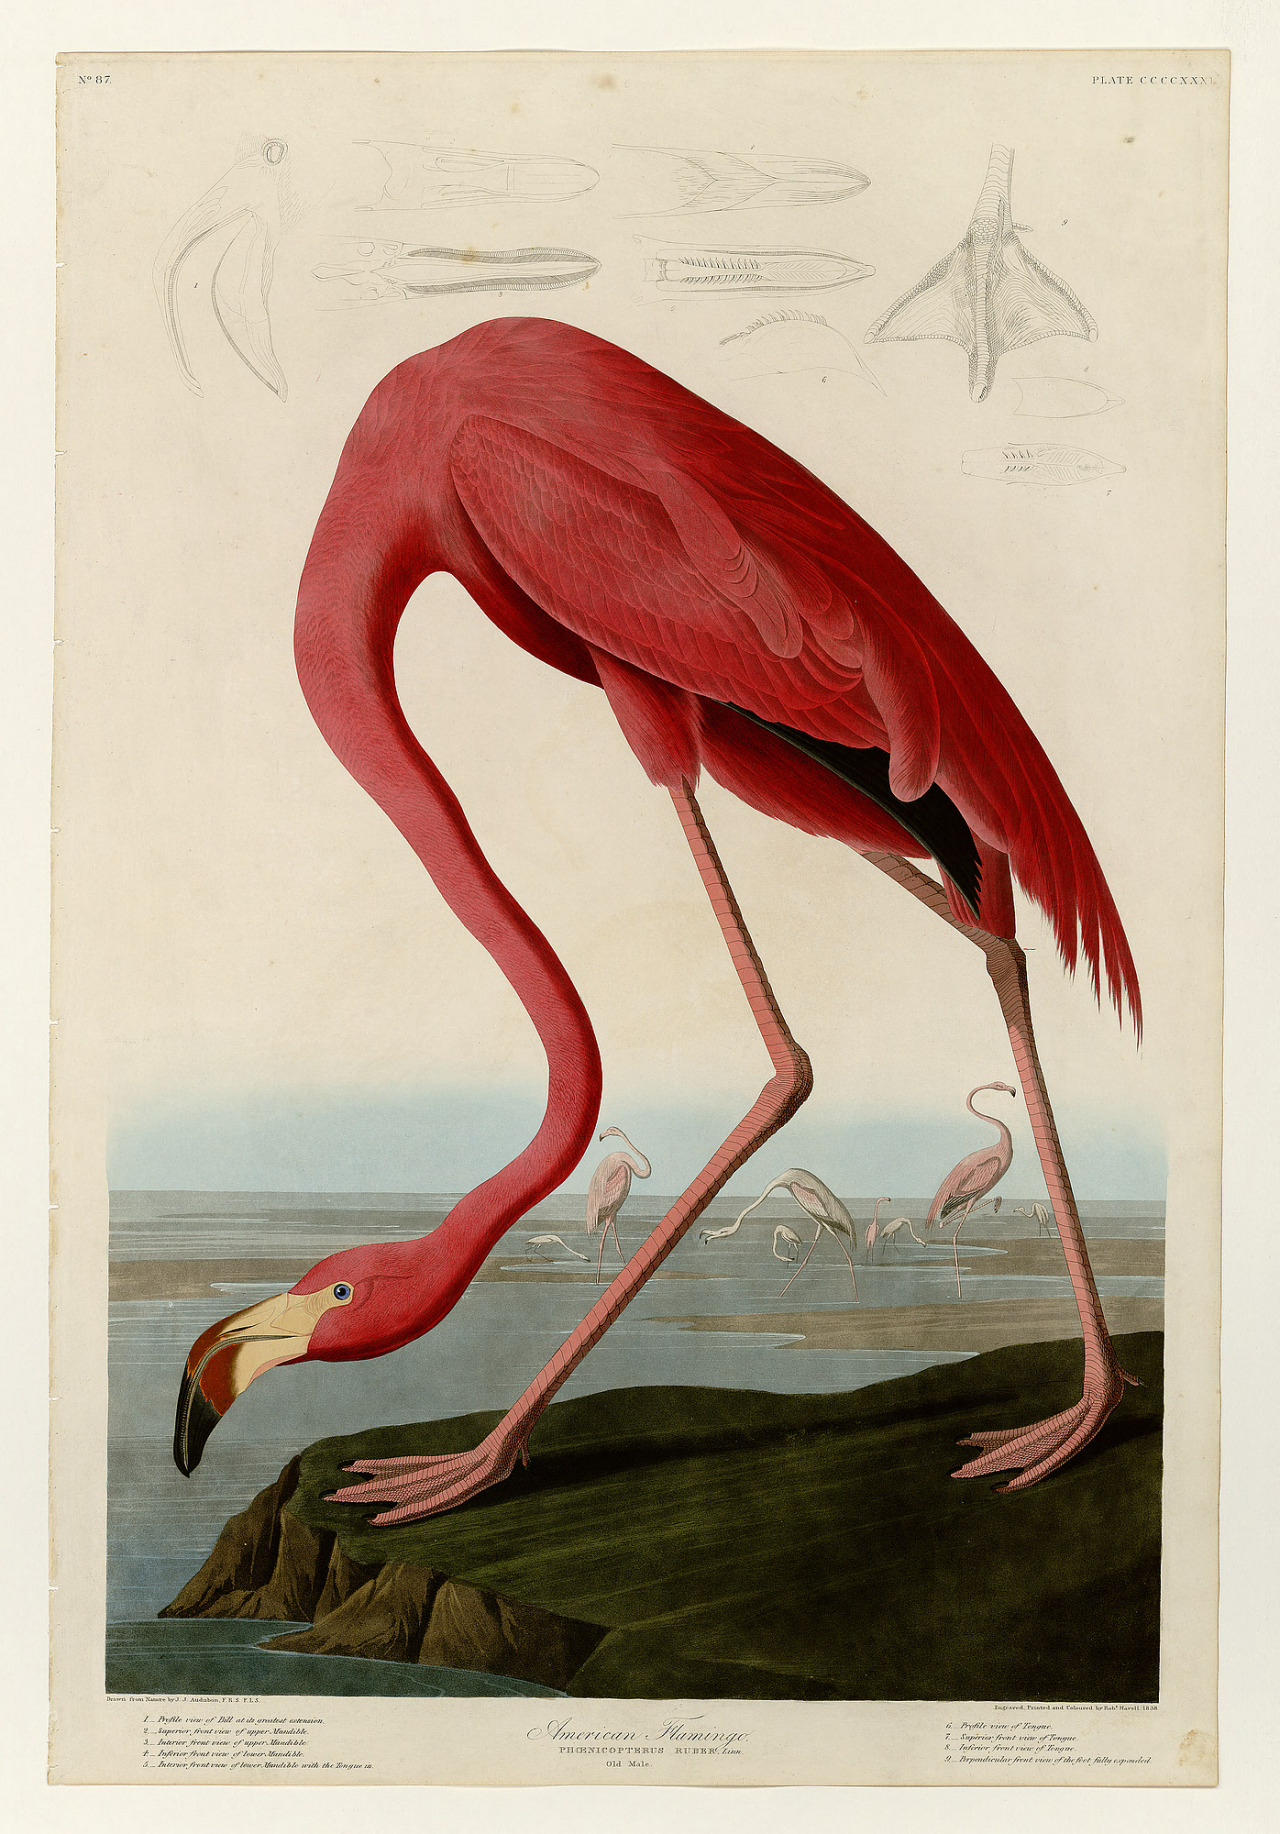 John James Audubon, adult male american flamingo, 1840-44. The birds of America, from drawings made in the United States and their territories. Via University of Pittsburgh